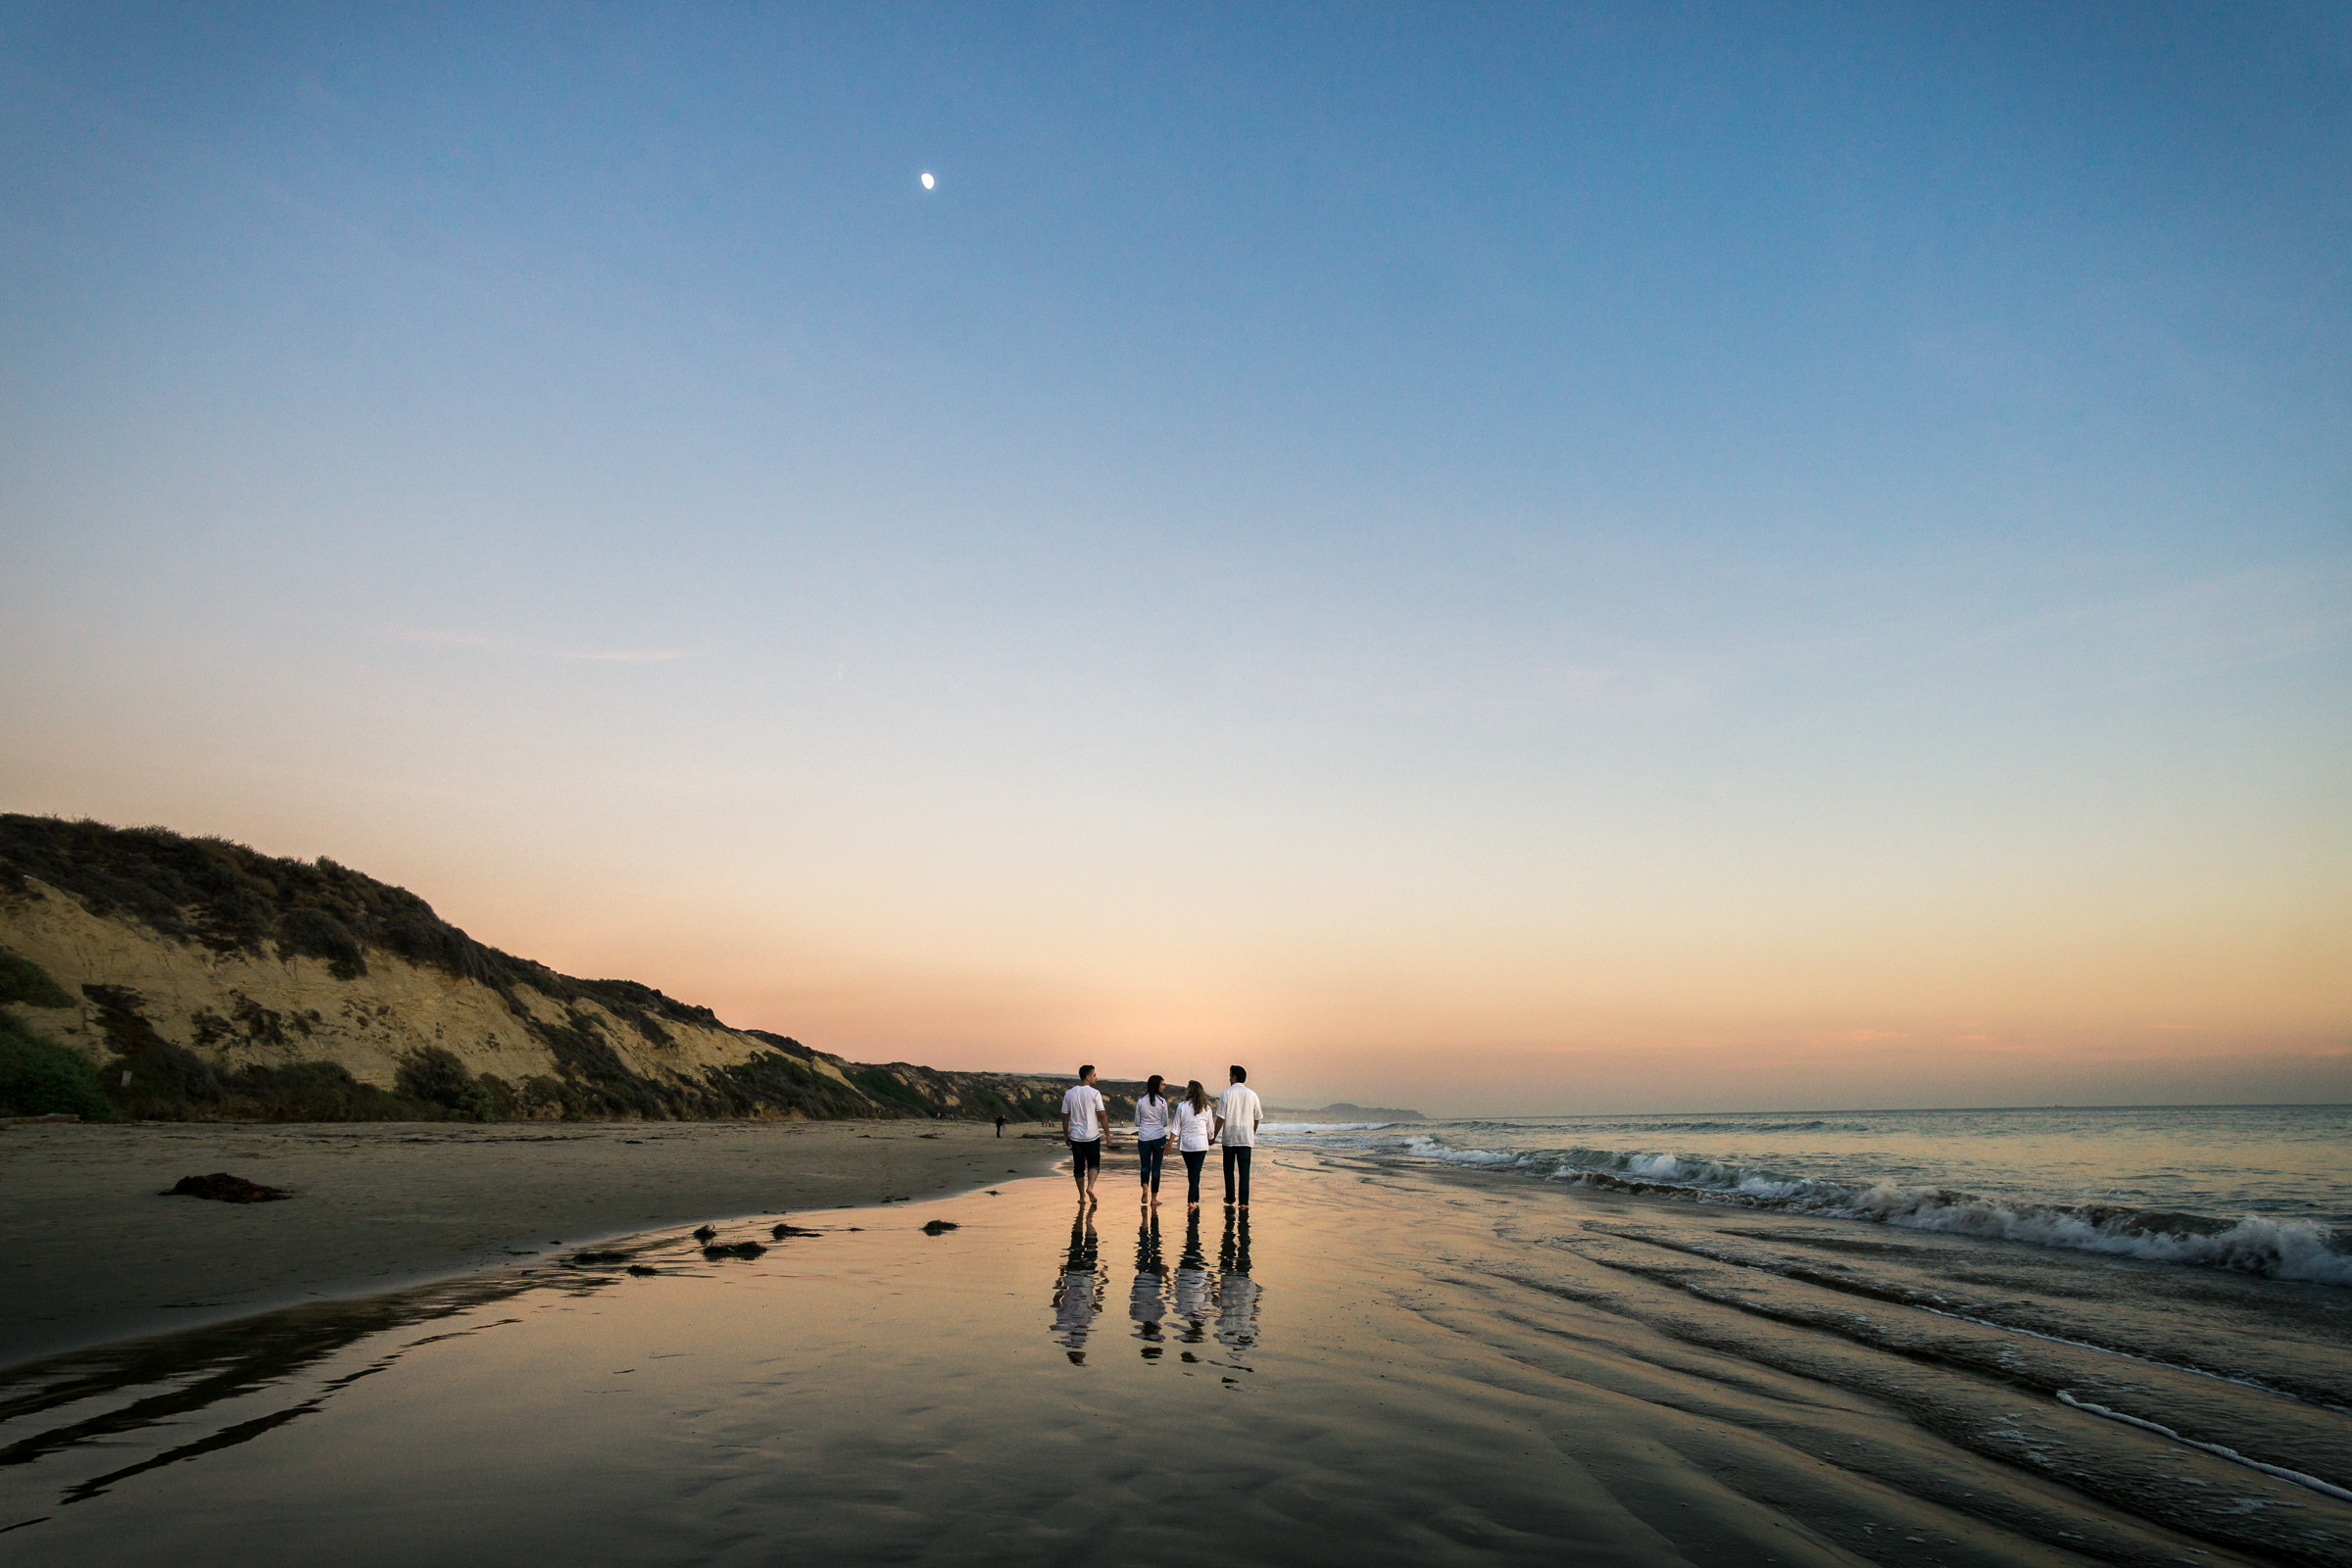 Family portraits of family walking on glassy seashore with blue sky and crescent moon while enjoying the sunset together during Golden hour at Crystal Cove State Beach in Newport